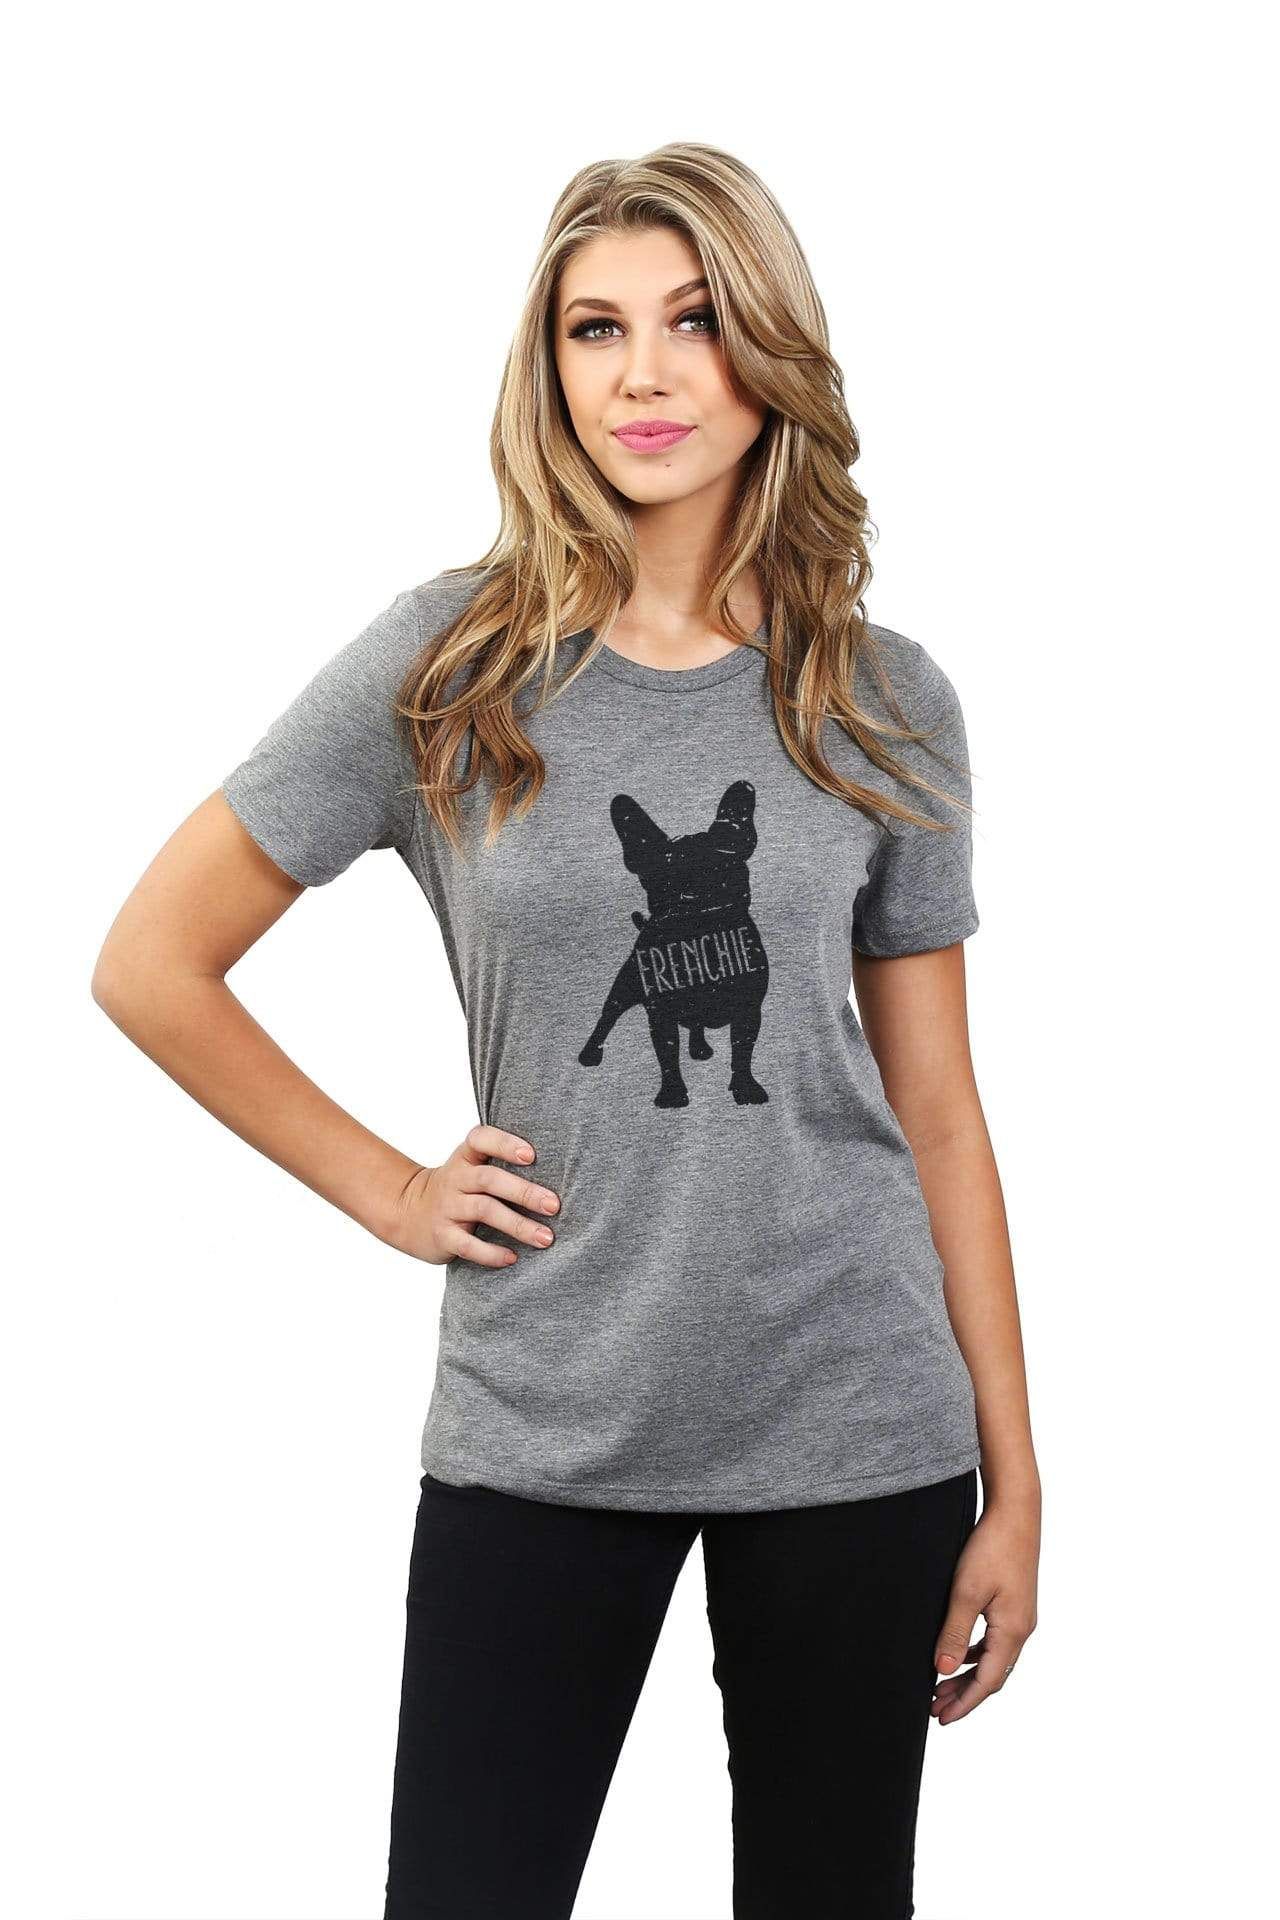 Frenchie Silhouette - Thread Tank | Stories You Can Wear | T-Shirts, Tank Tops and Sweatshirts